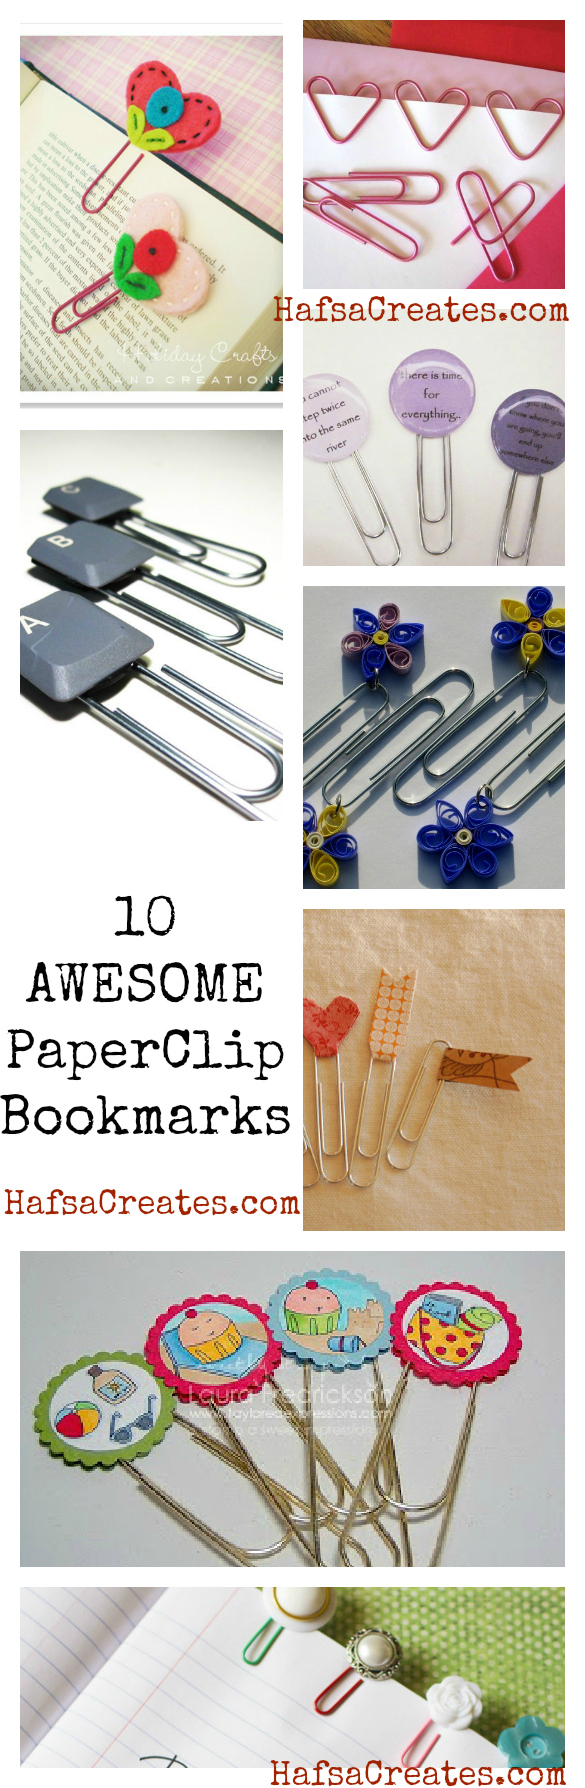 BEST #Paperclip bookmark ideas! Pin now and read later